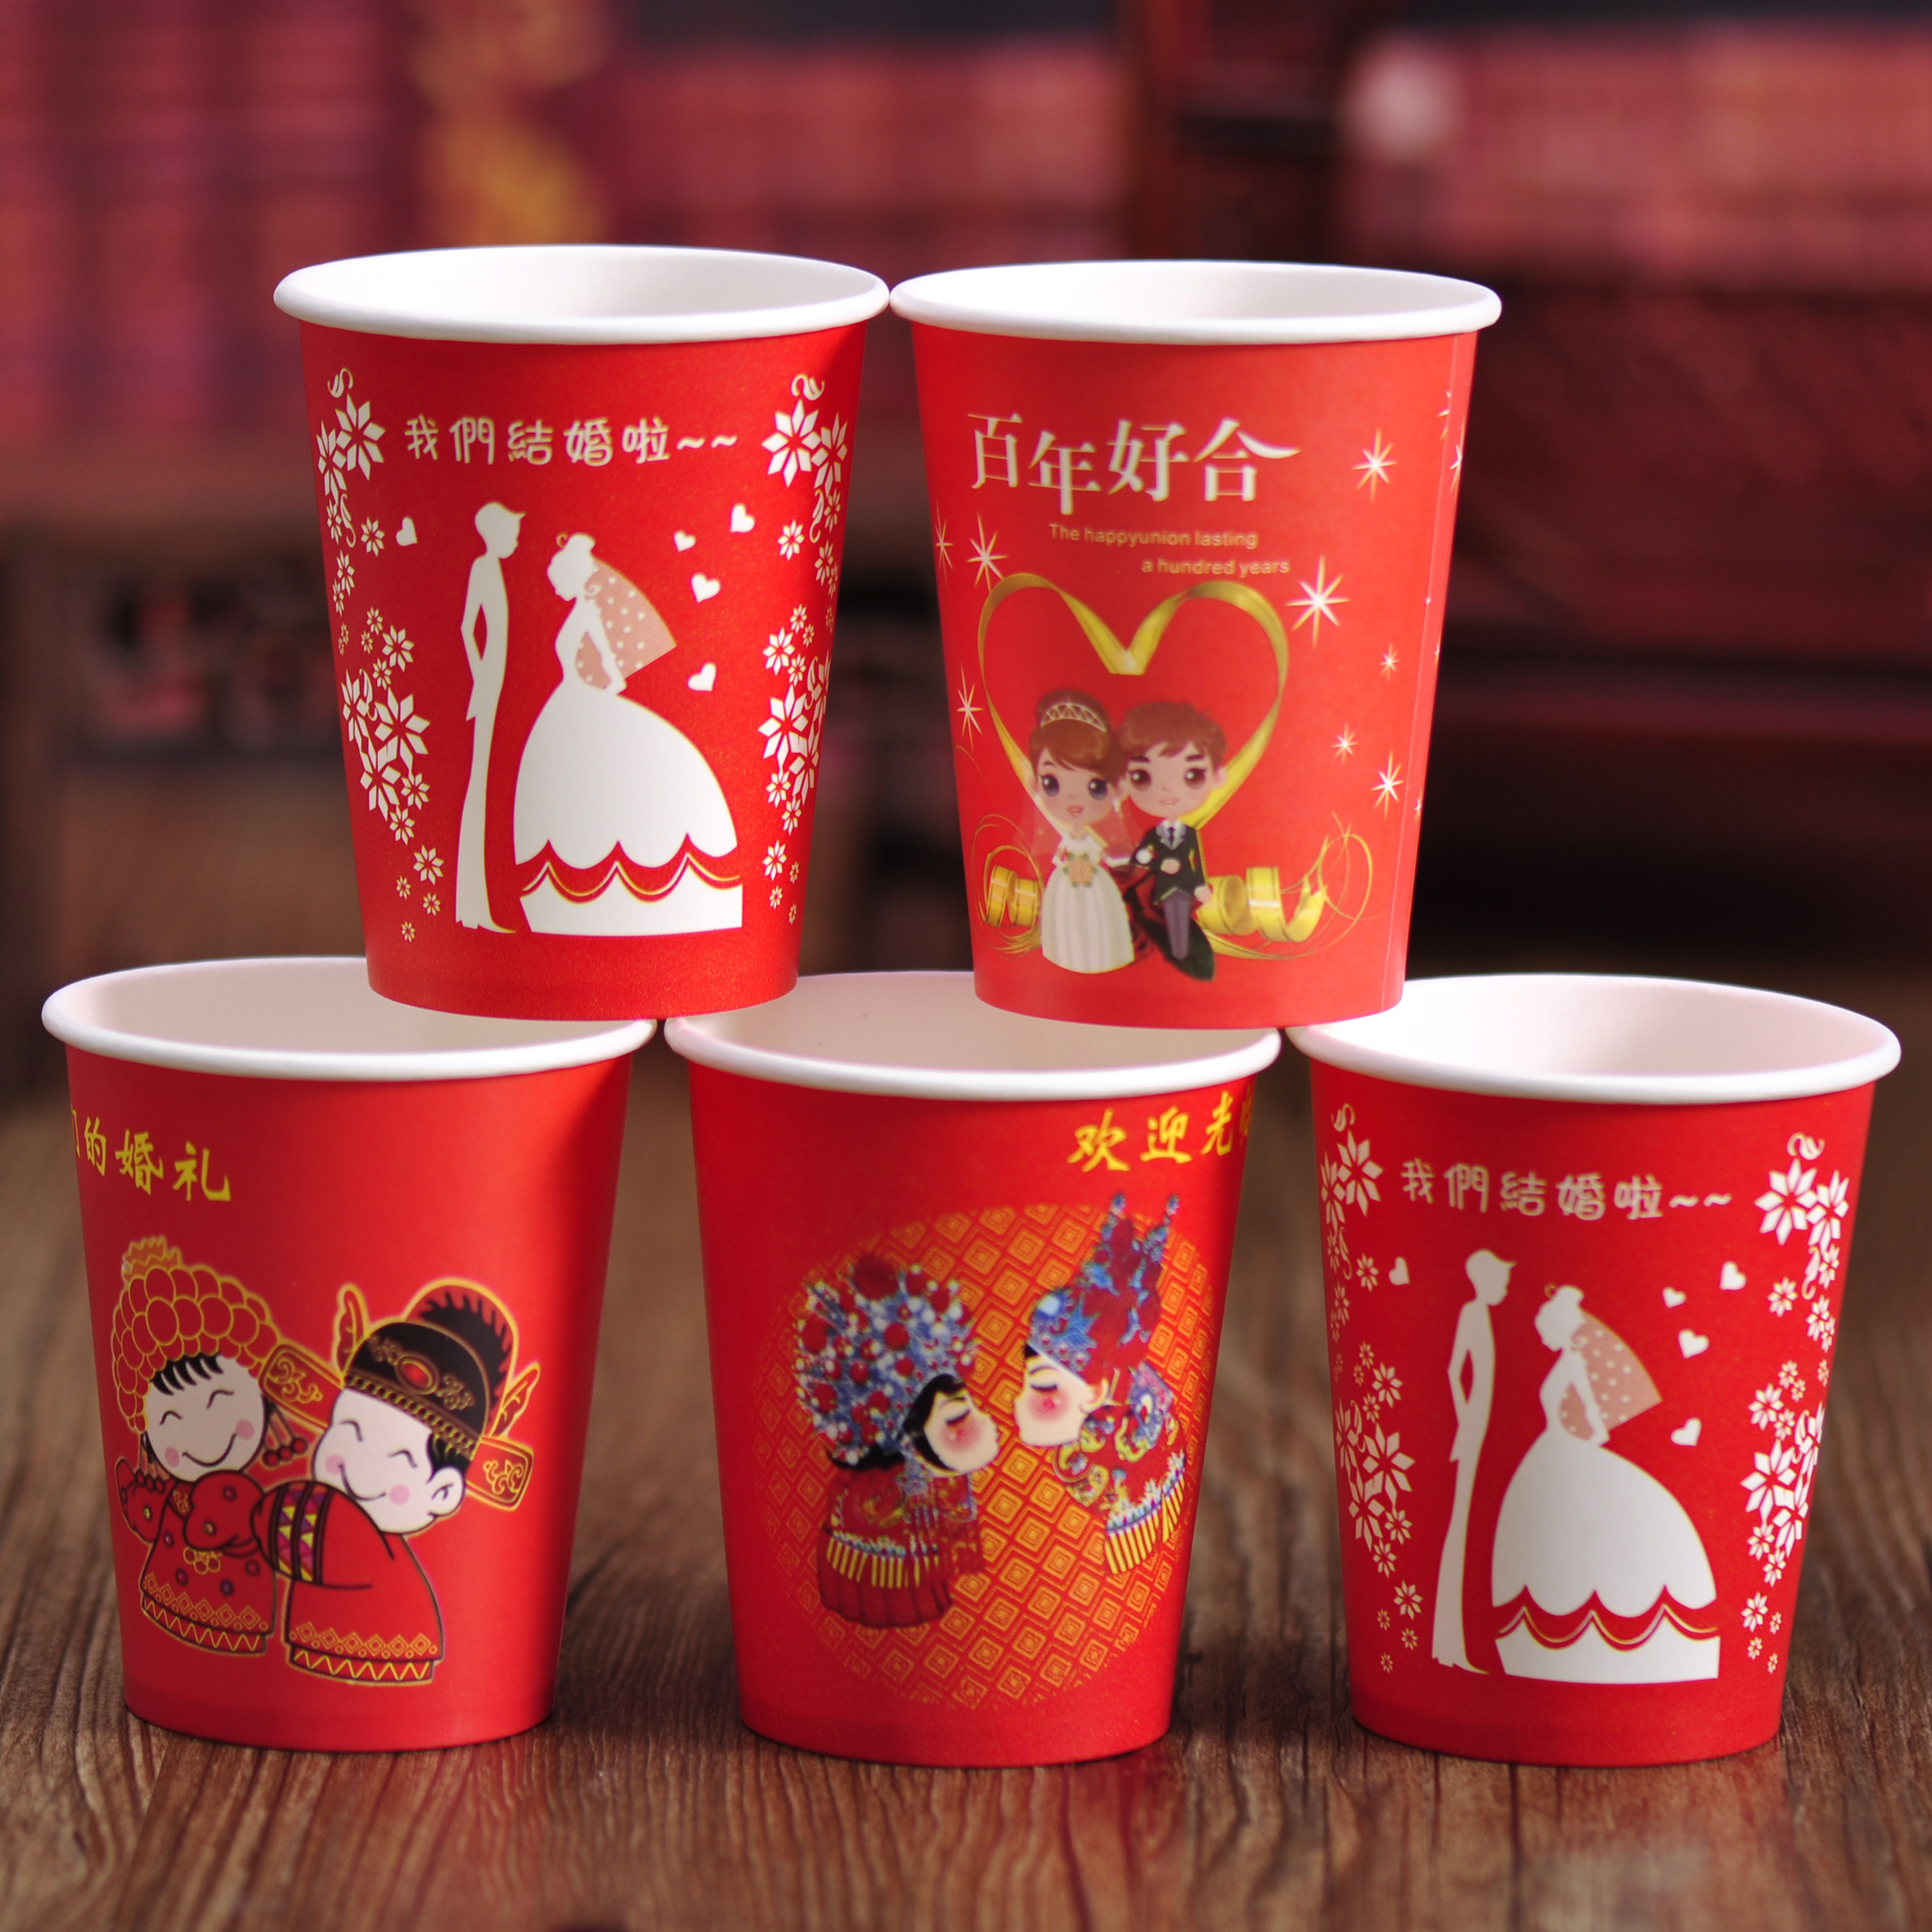 Wedding celebration supplies wedding cups cups thick red cups cups festive red disposable safety